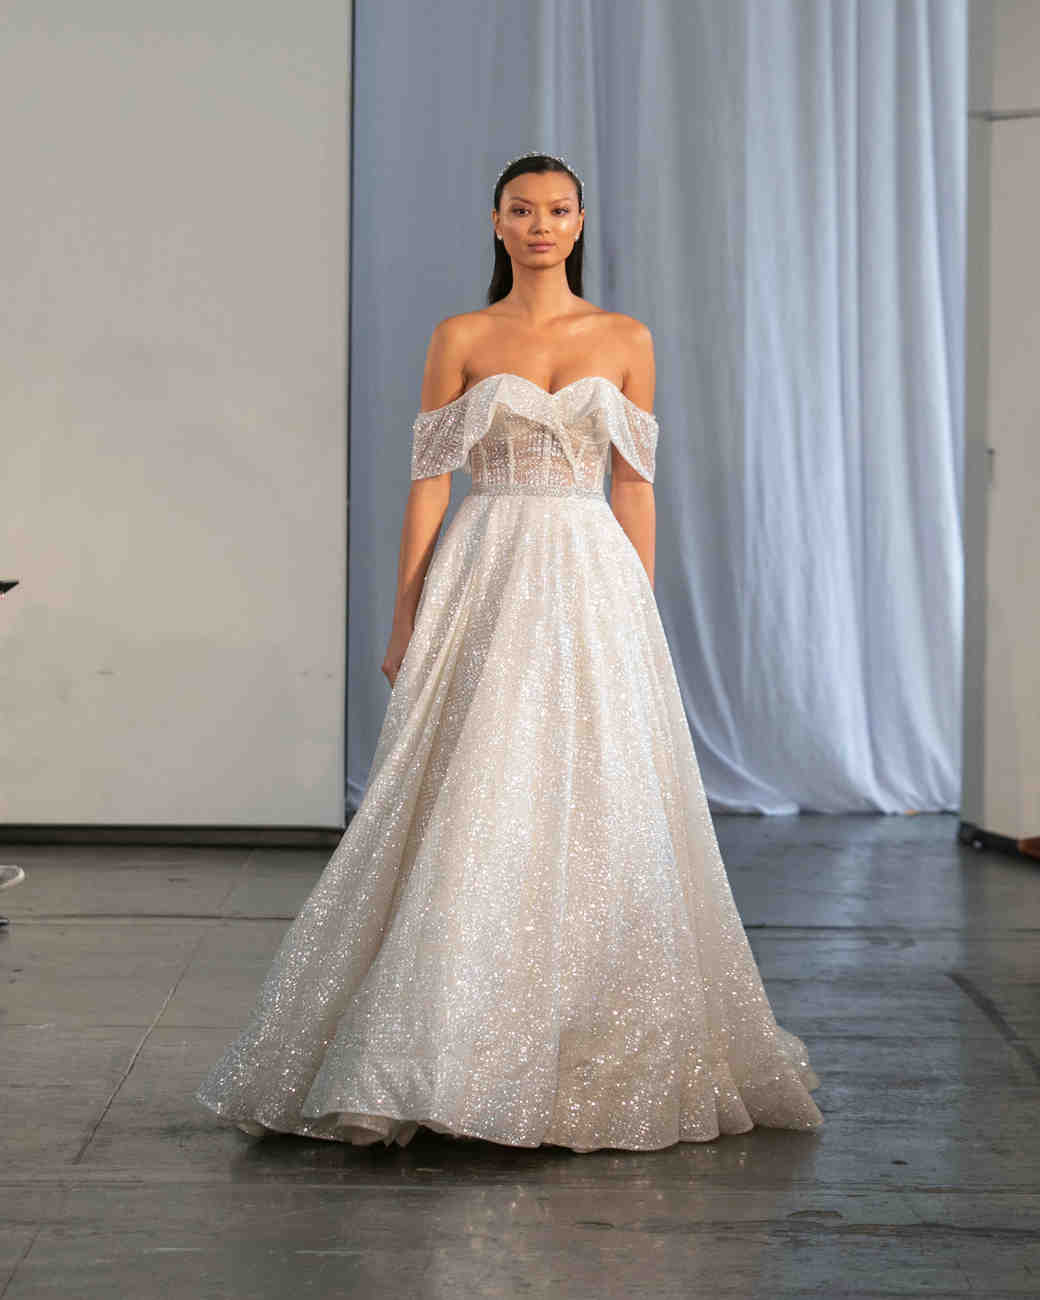 berta fall 2019 over the shoulder glitter a-line wedding dress